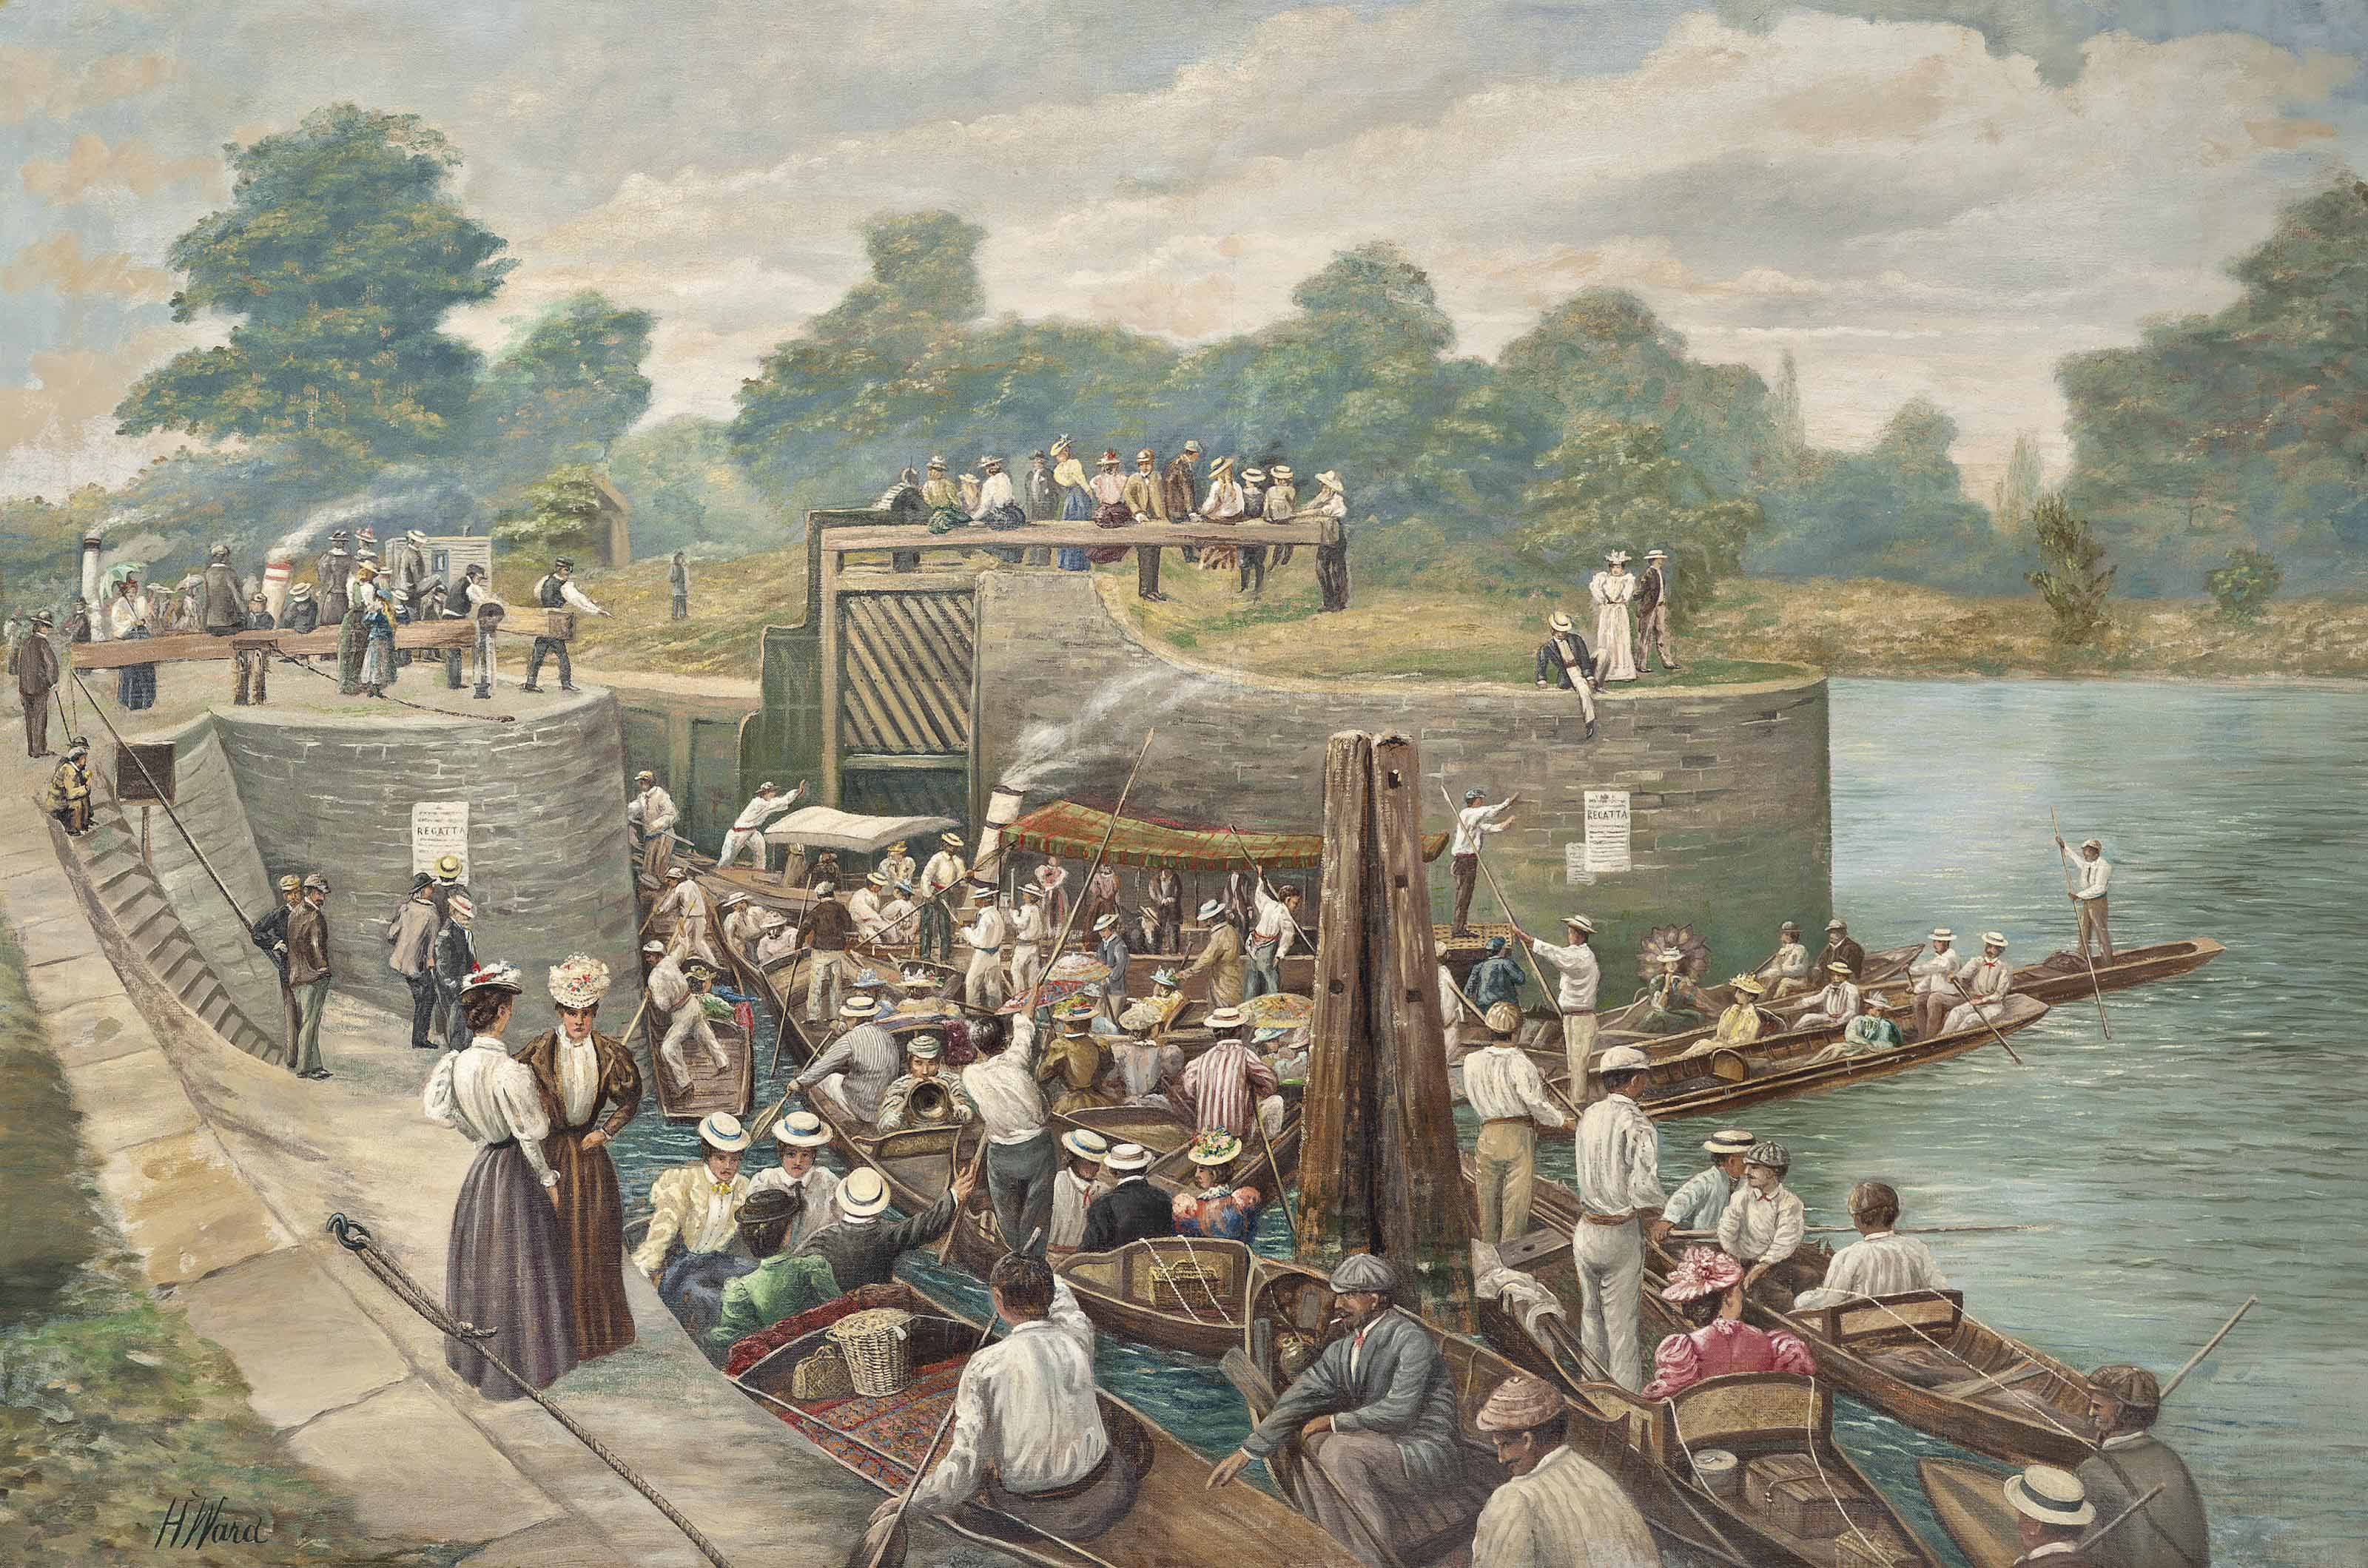 At Boulter's Lock, the Thames Regatta